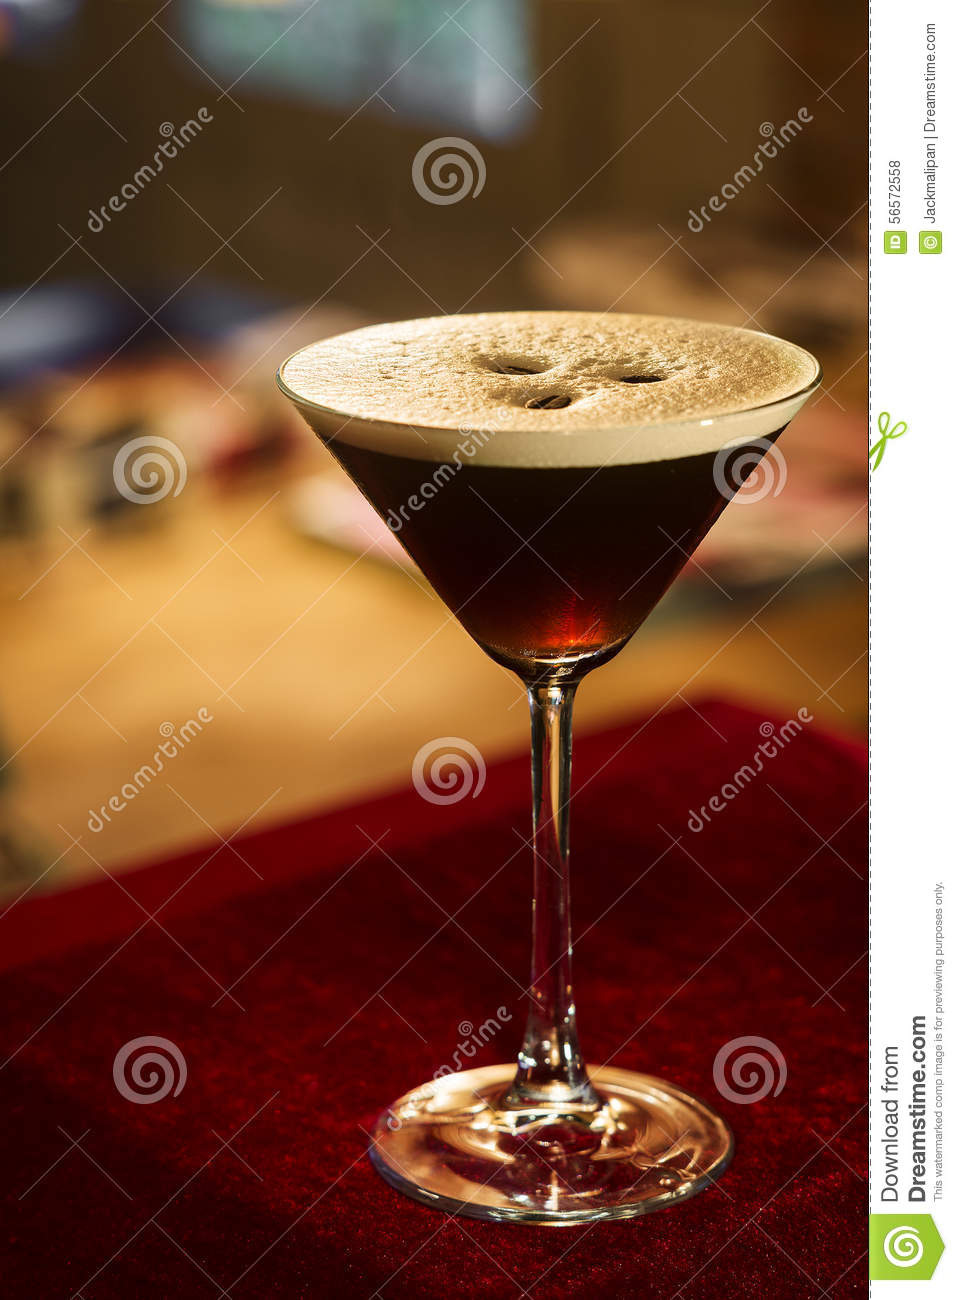 Espresso expresso coffee martini cocktail